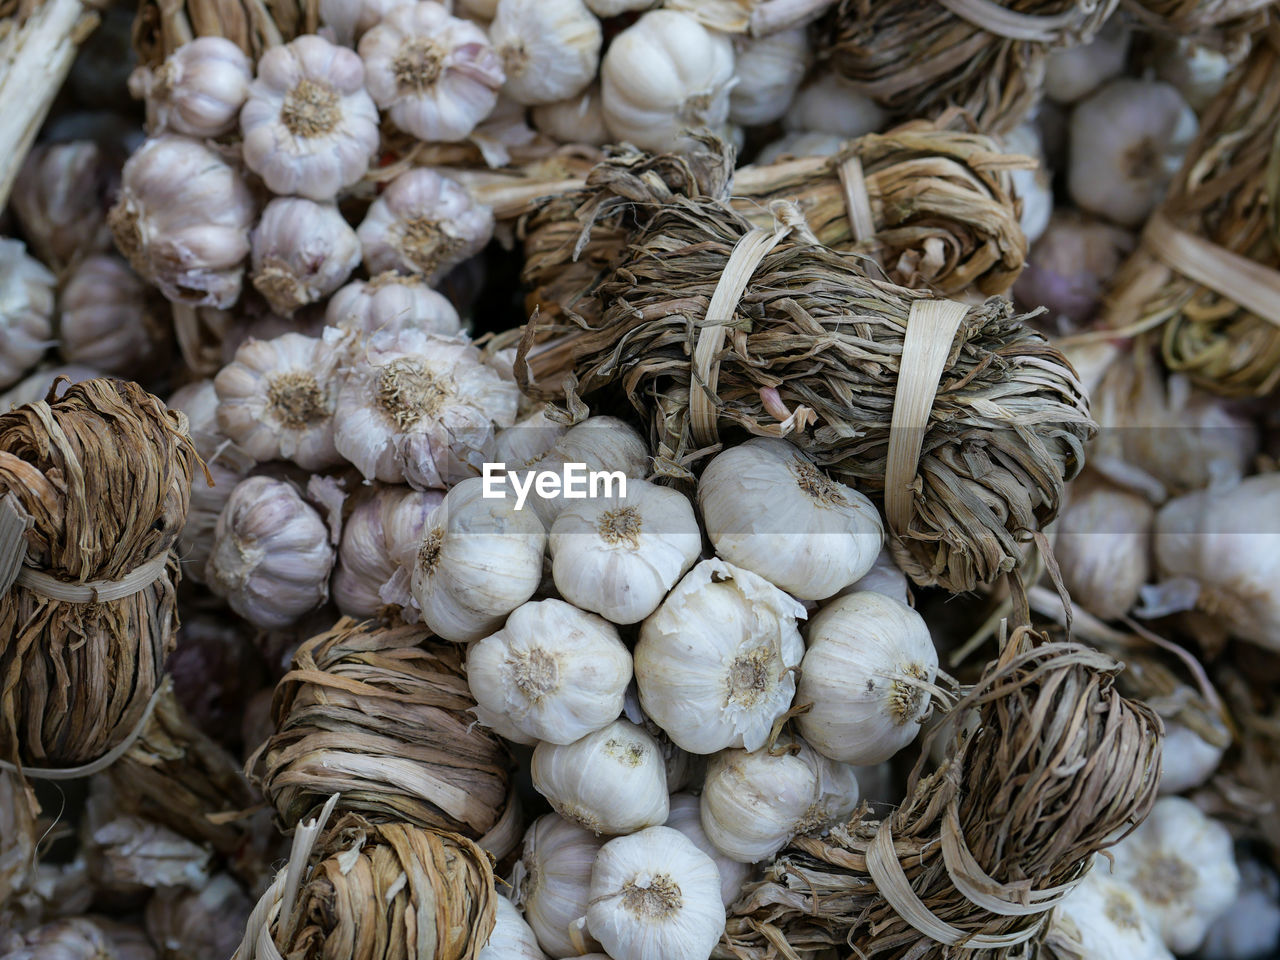 Close-up of garlic for sale in market